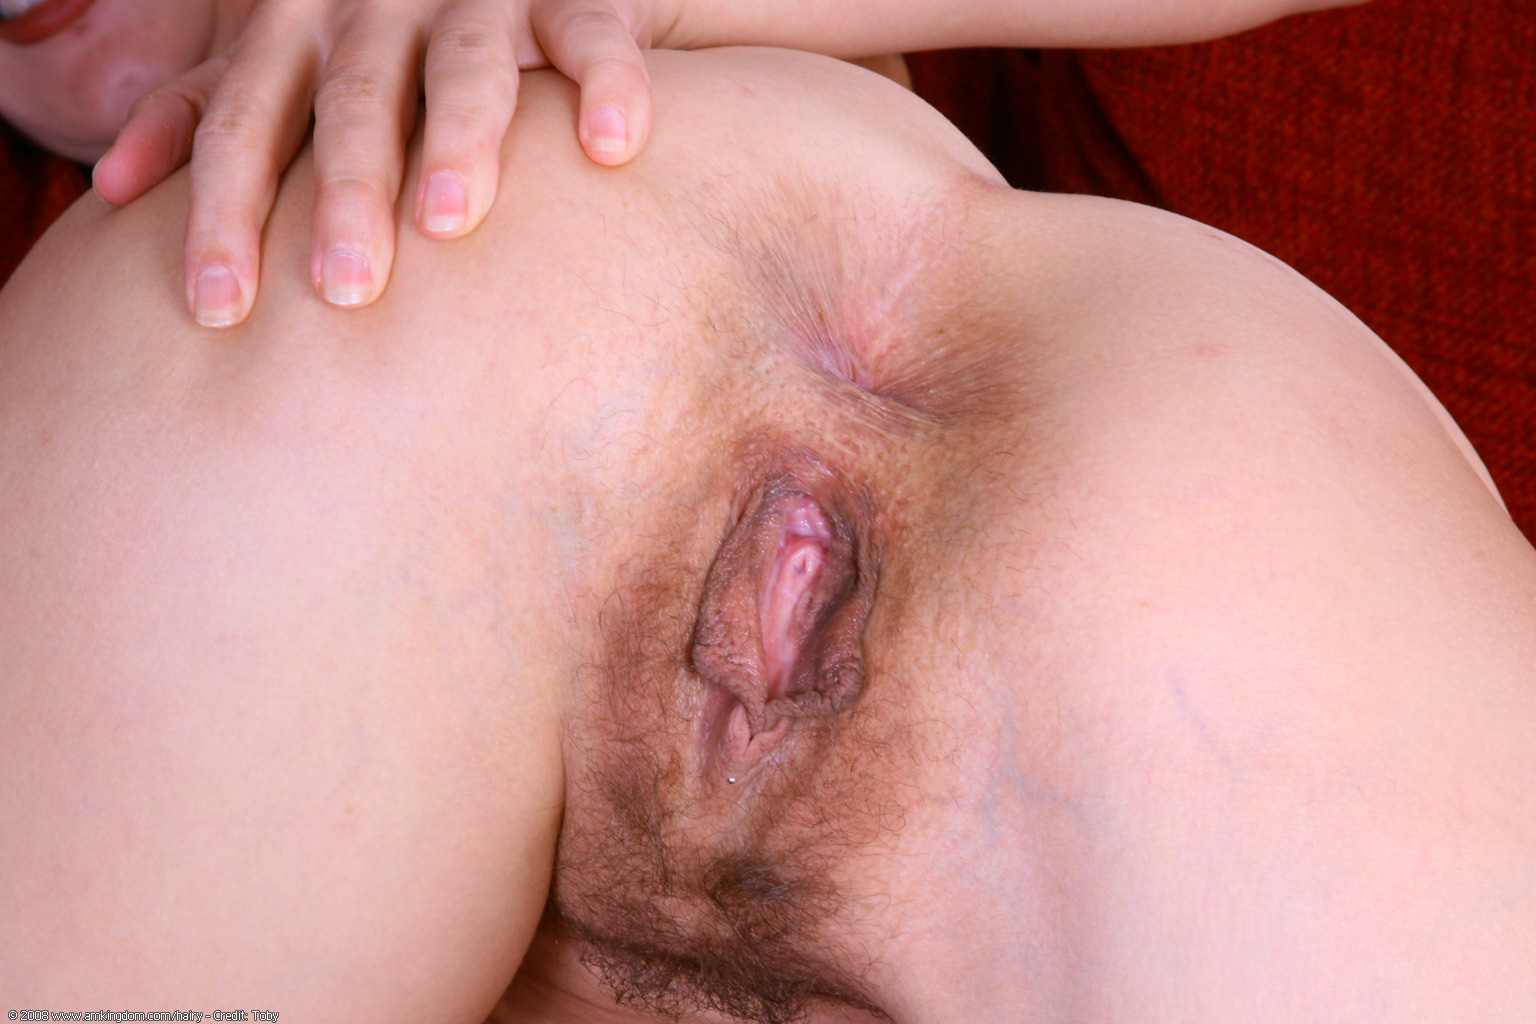 this beautiful cutie is penetrated deep and cummed on